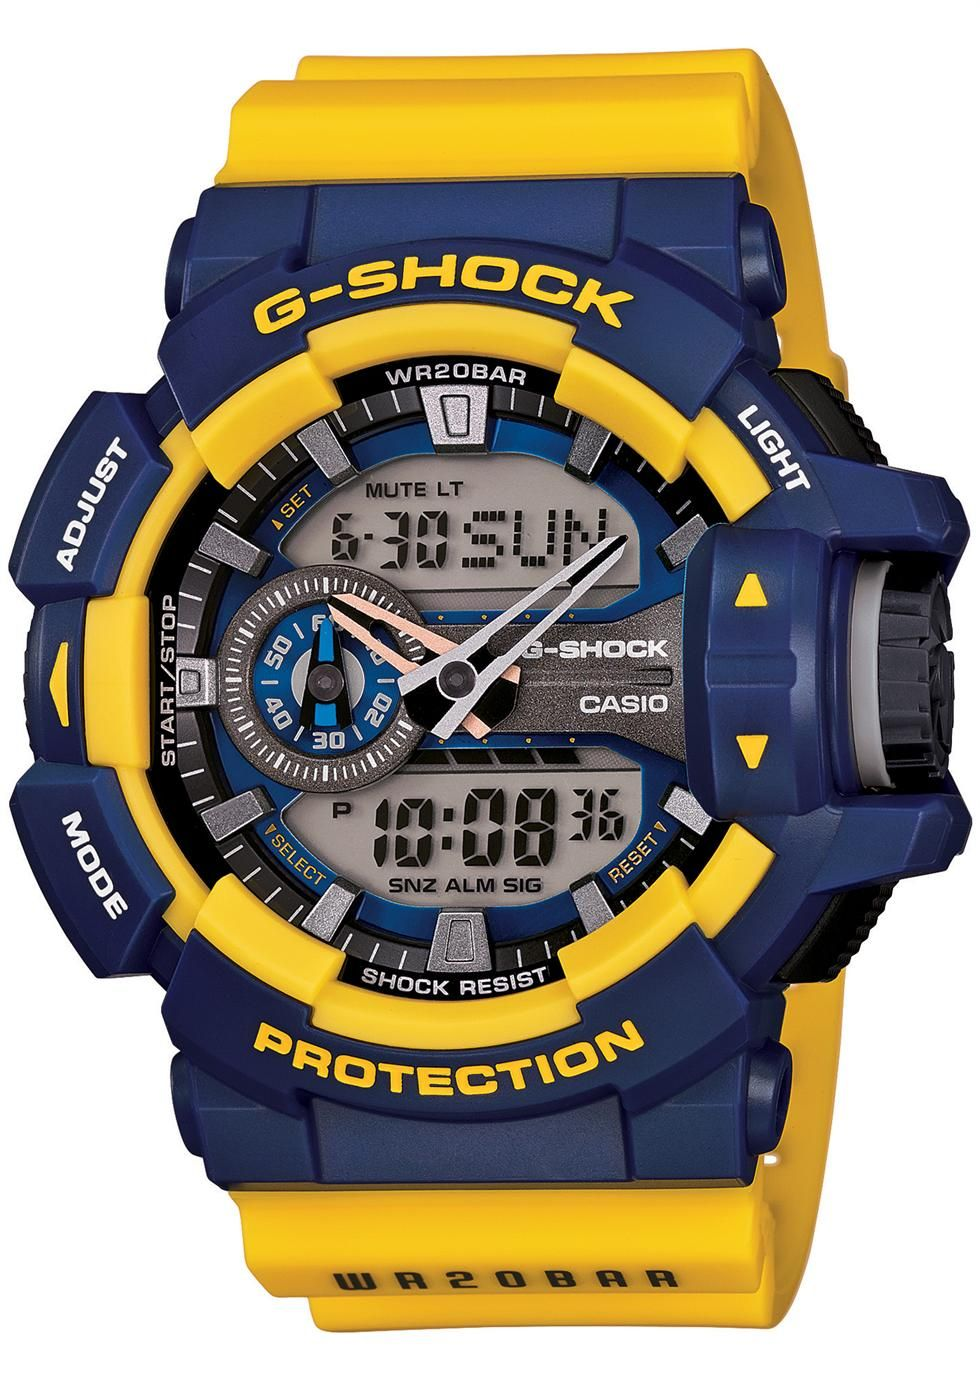 d594c01dbc8 G-Shock GA-400 Series Worldtime -Navy Gold